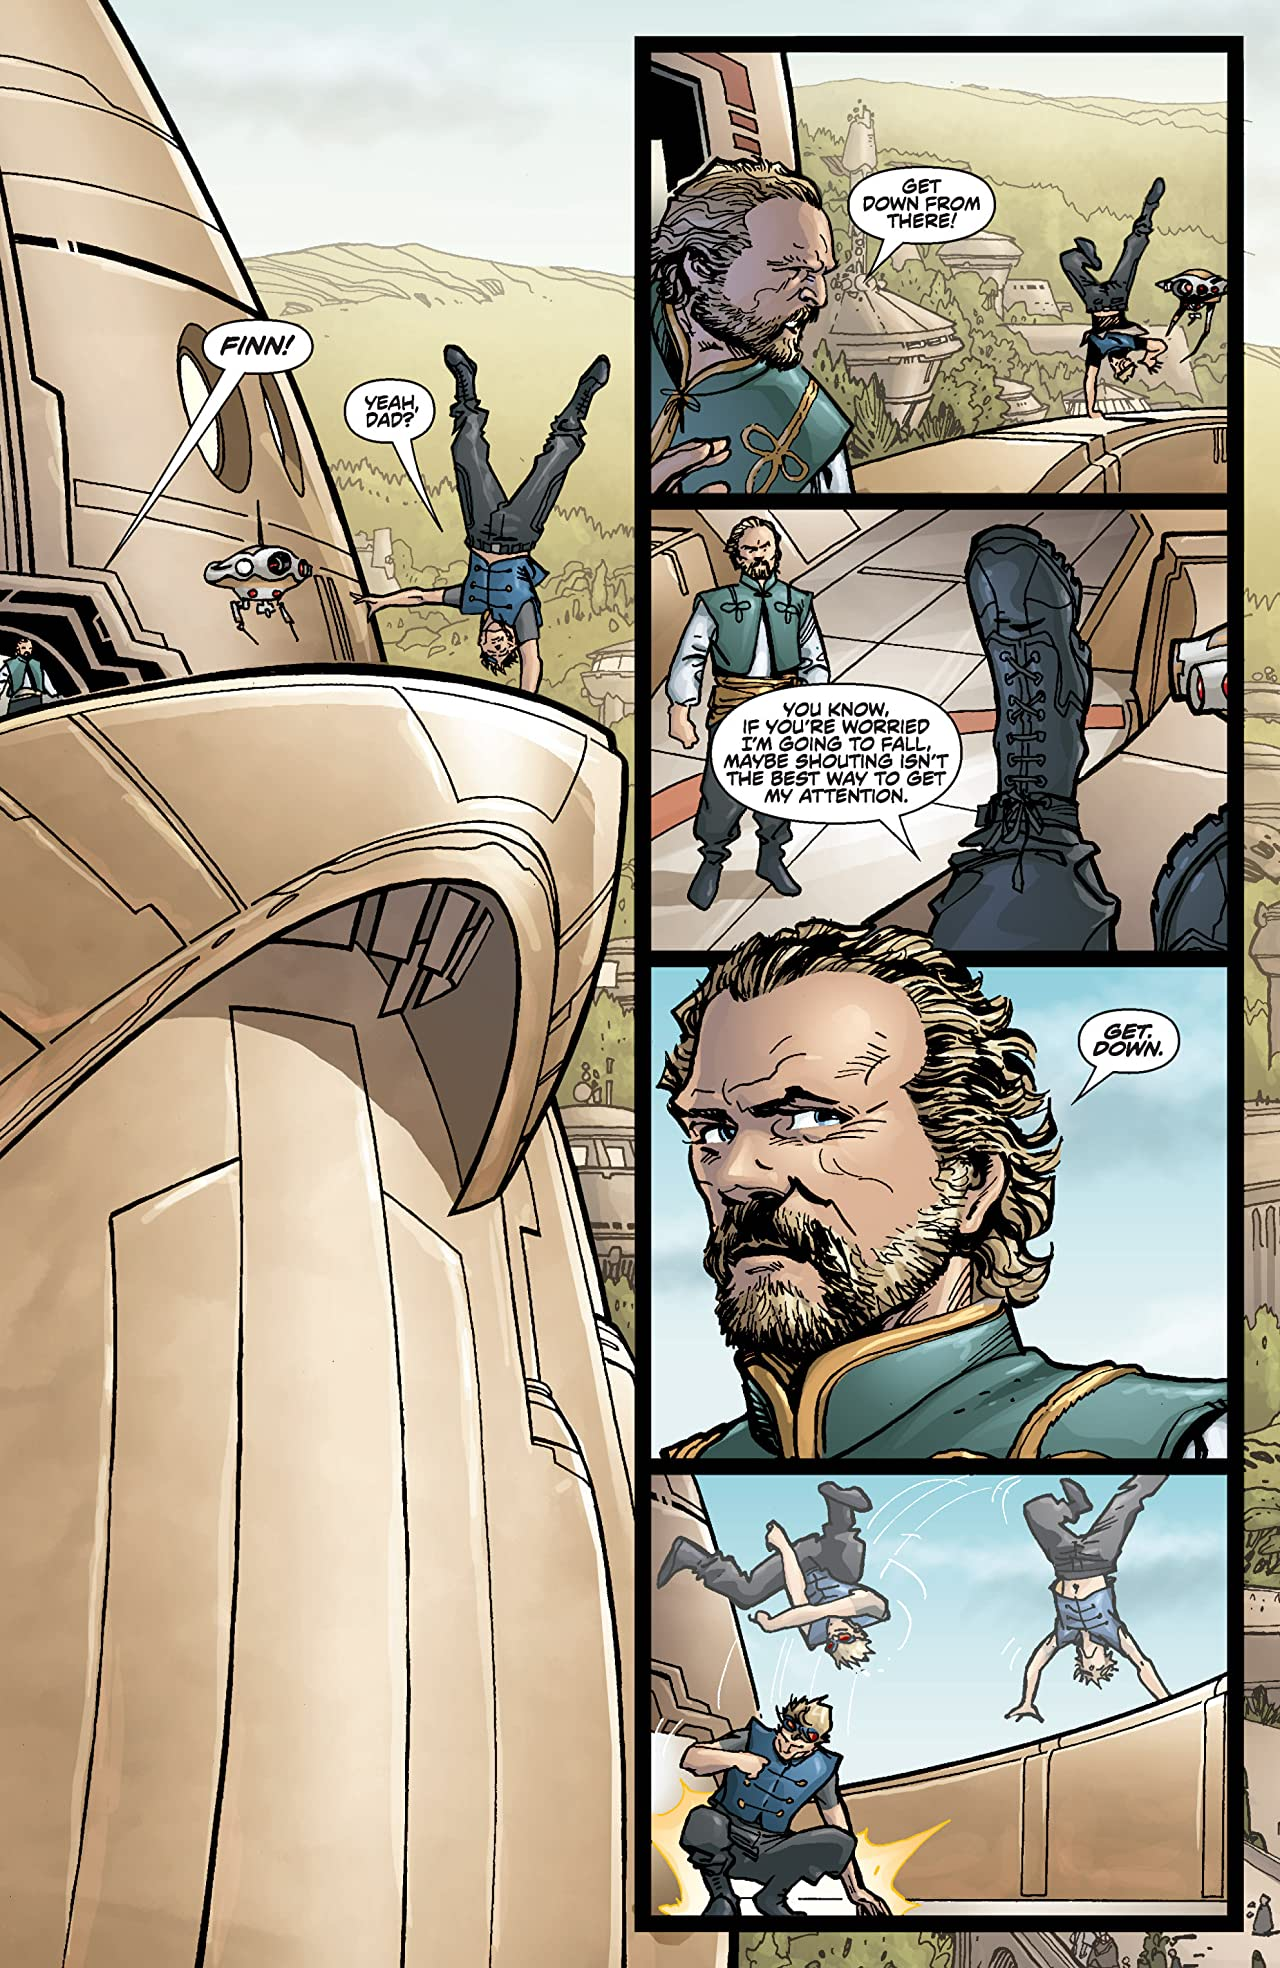 Star Wars: Invasion (2009) #1